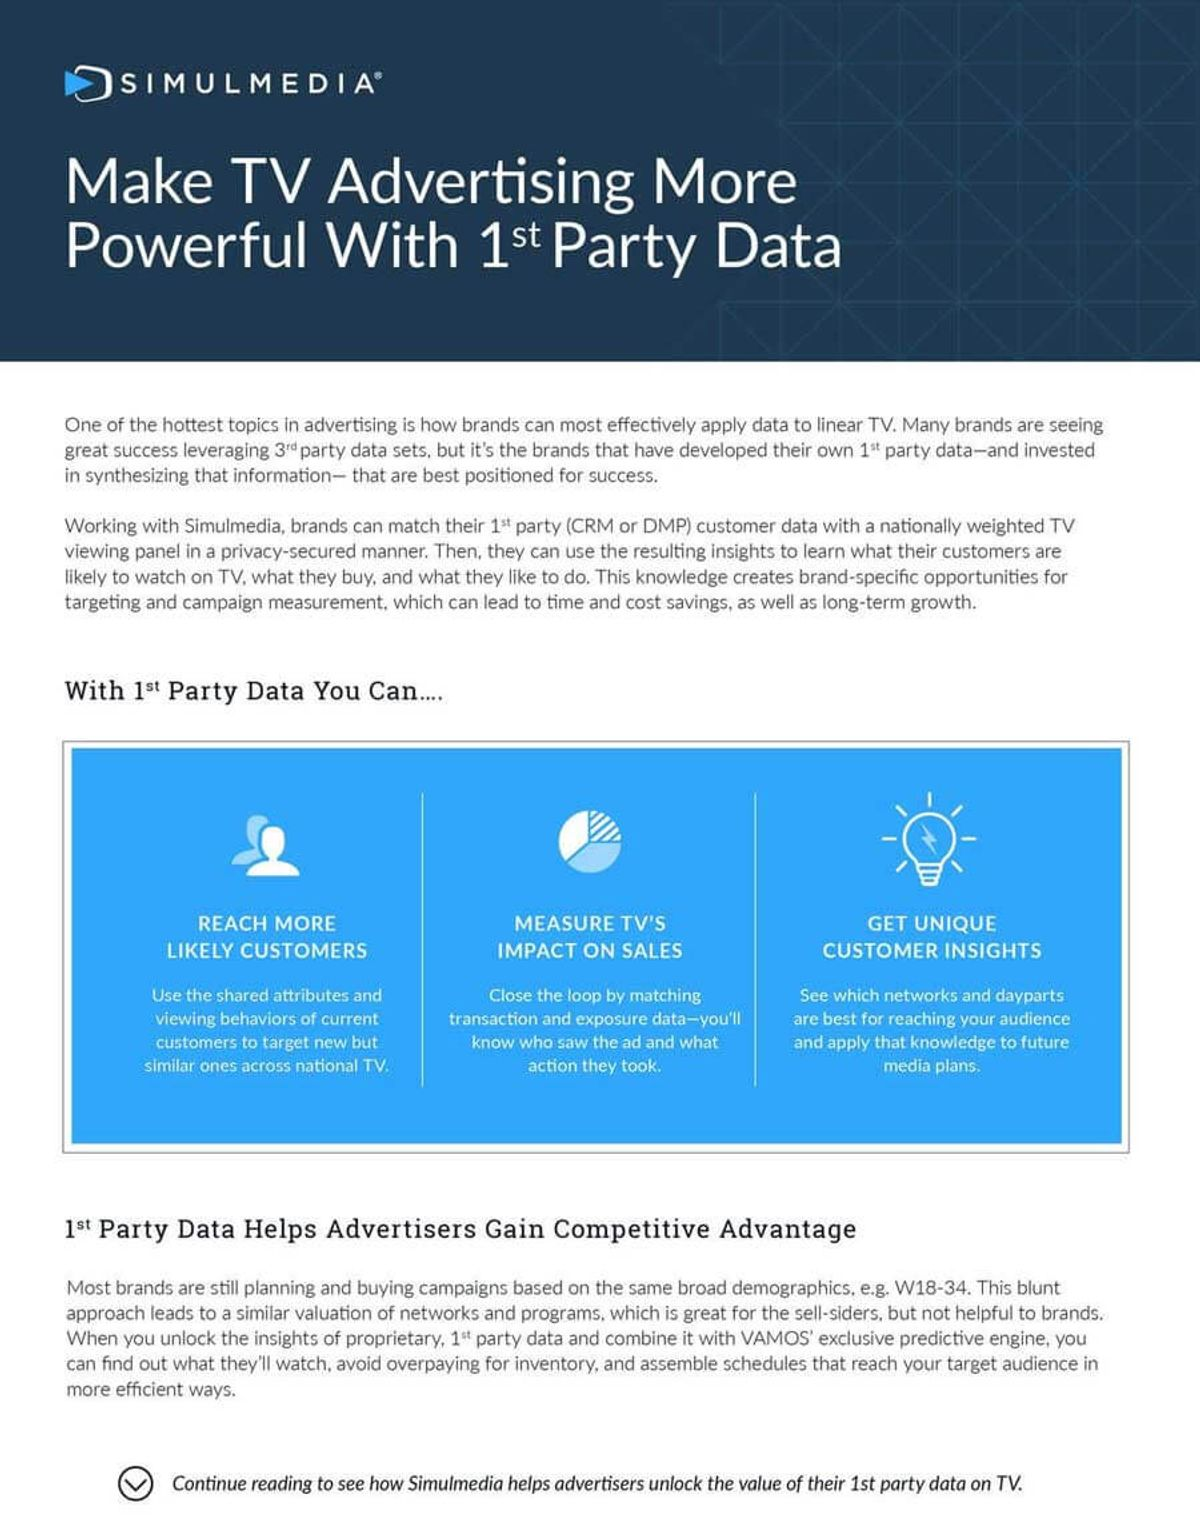 Image of one sheet covering making TV advertising more powerful with 1st party data.